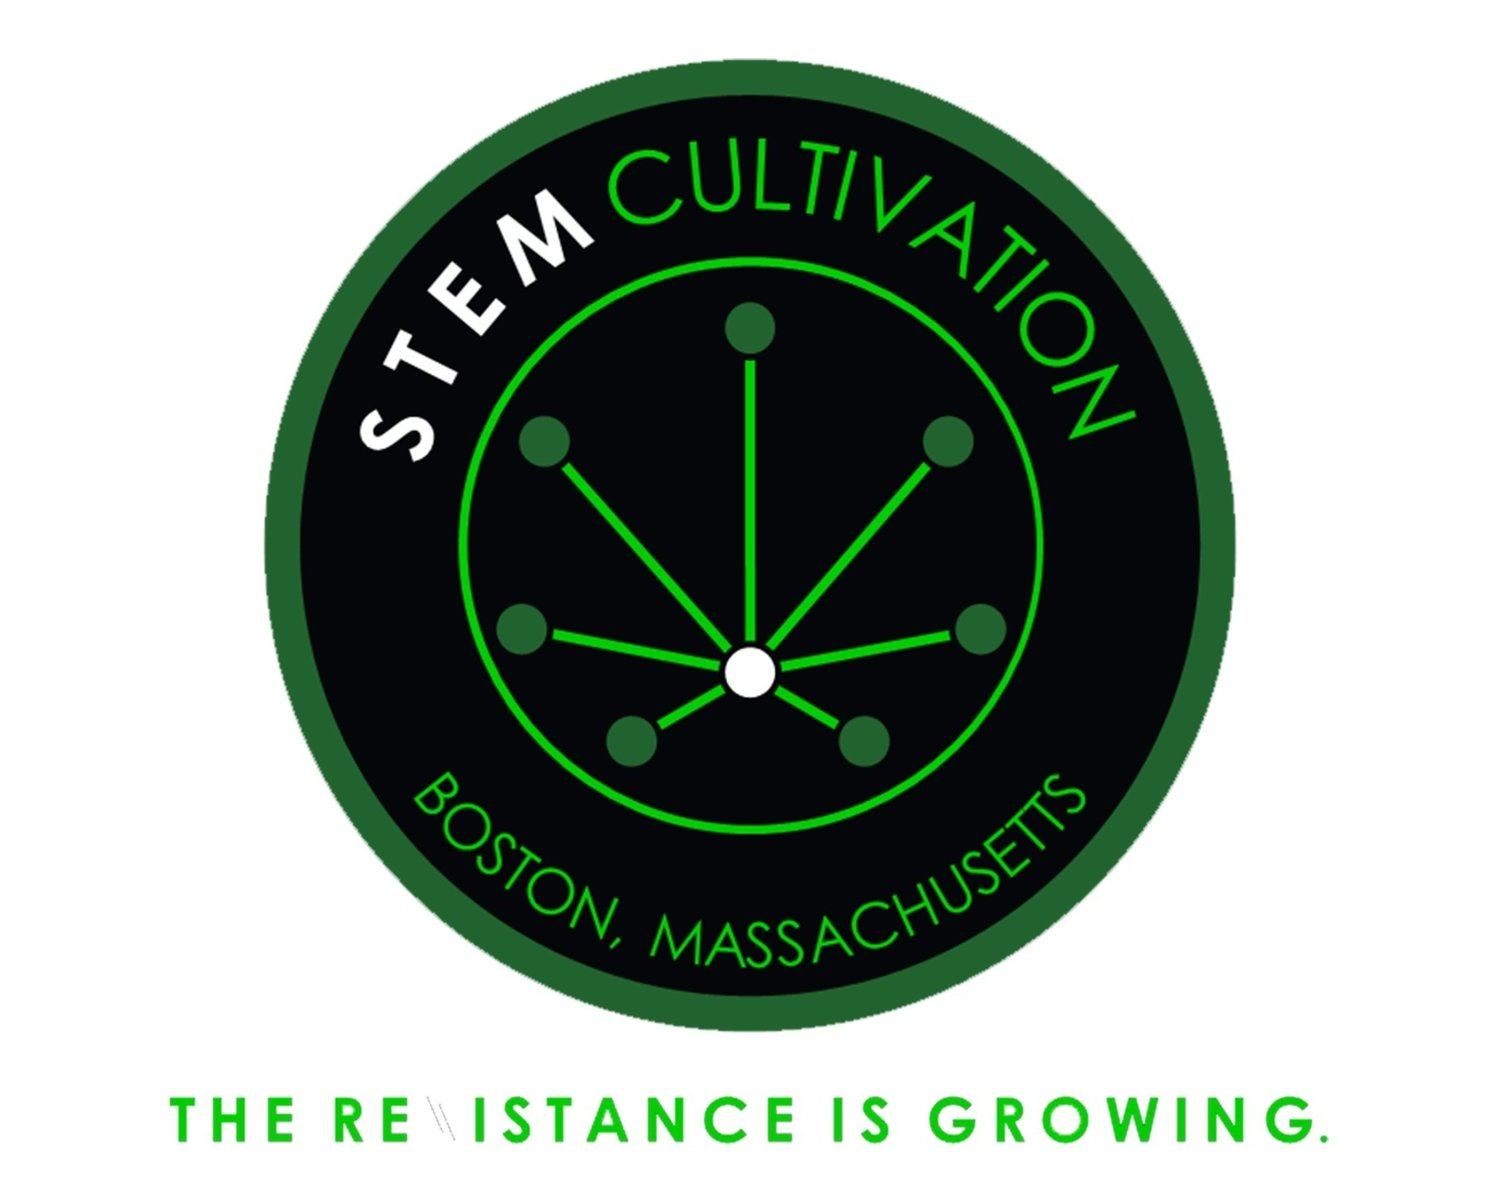 STEM Cultivation